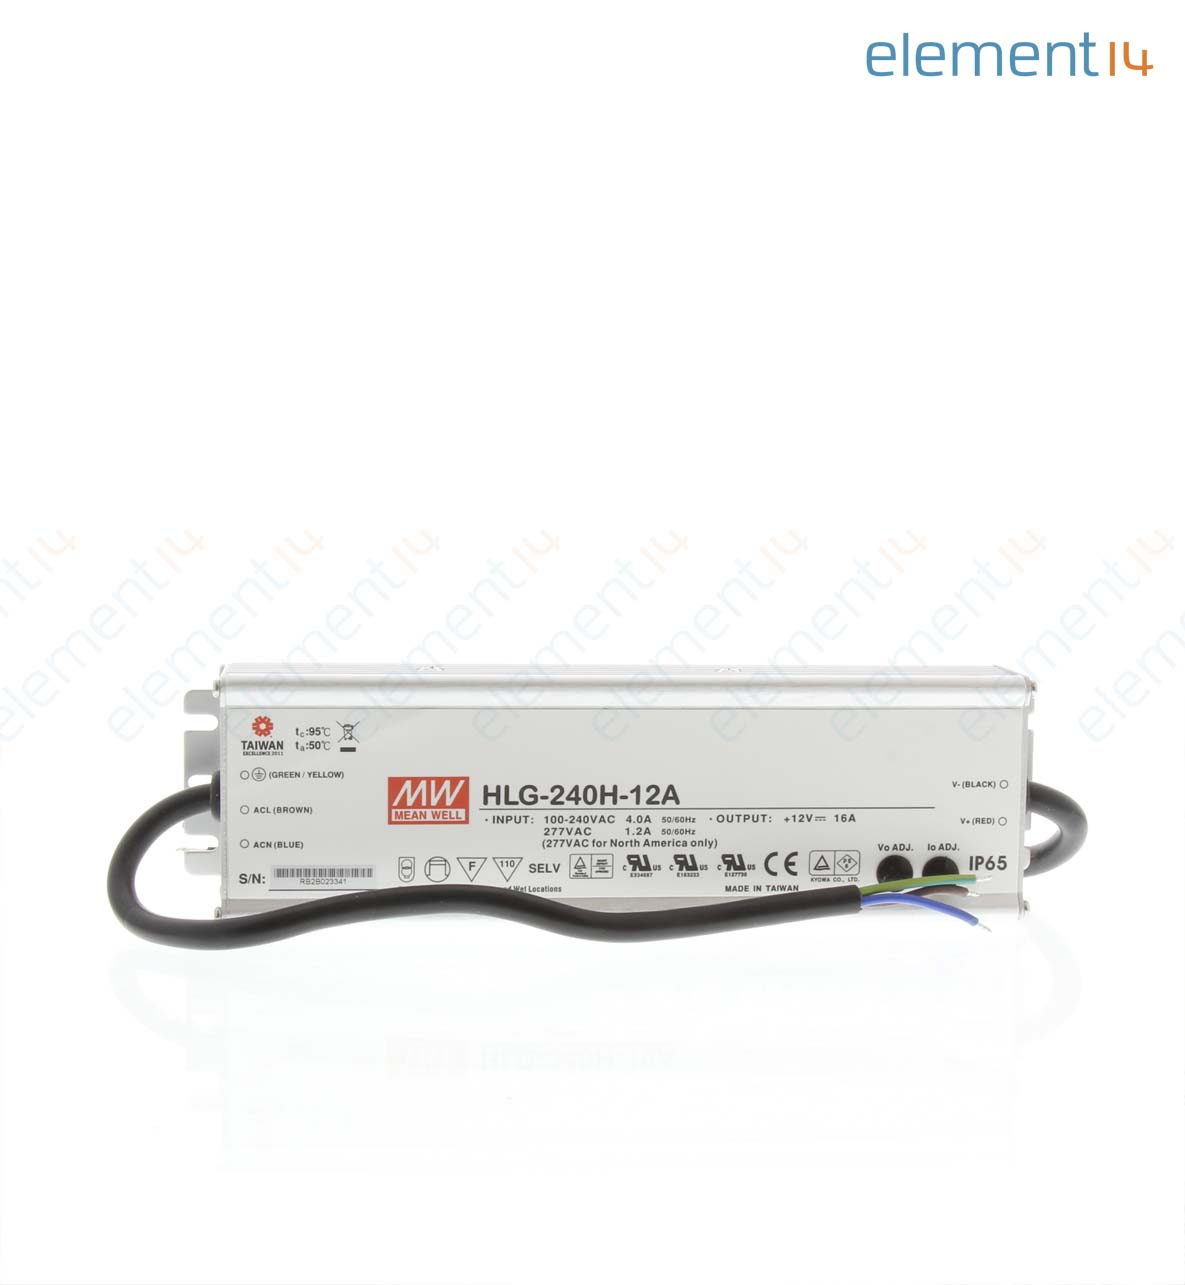 Hlg 240h 12a Mean Well Led Driver Ite 192 W Smps 50 Watt Street Light Circuit Electronic Add To Compare